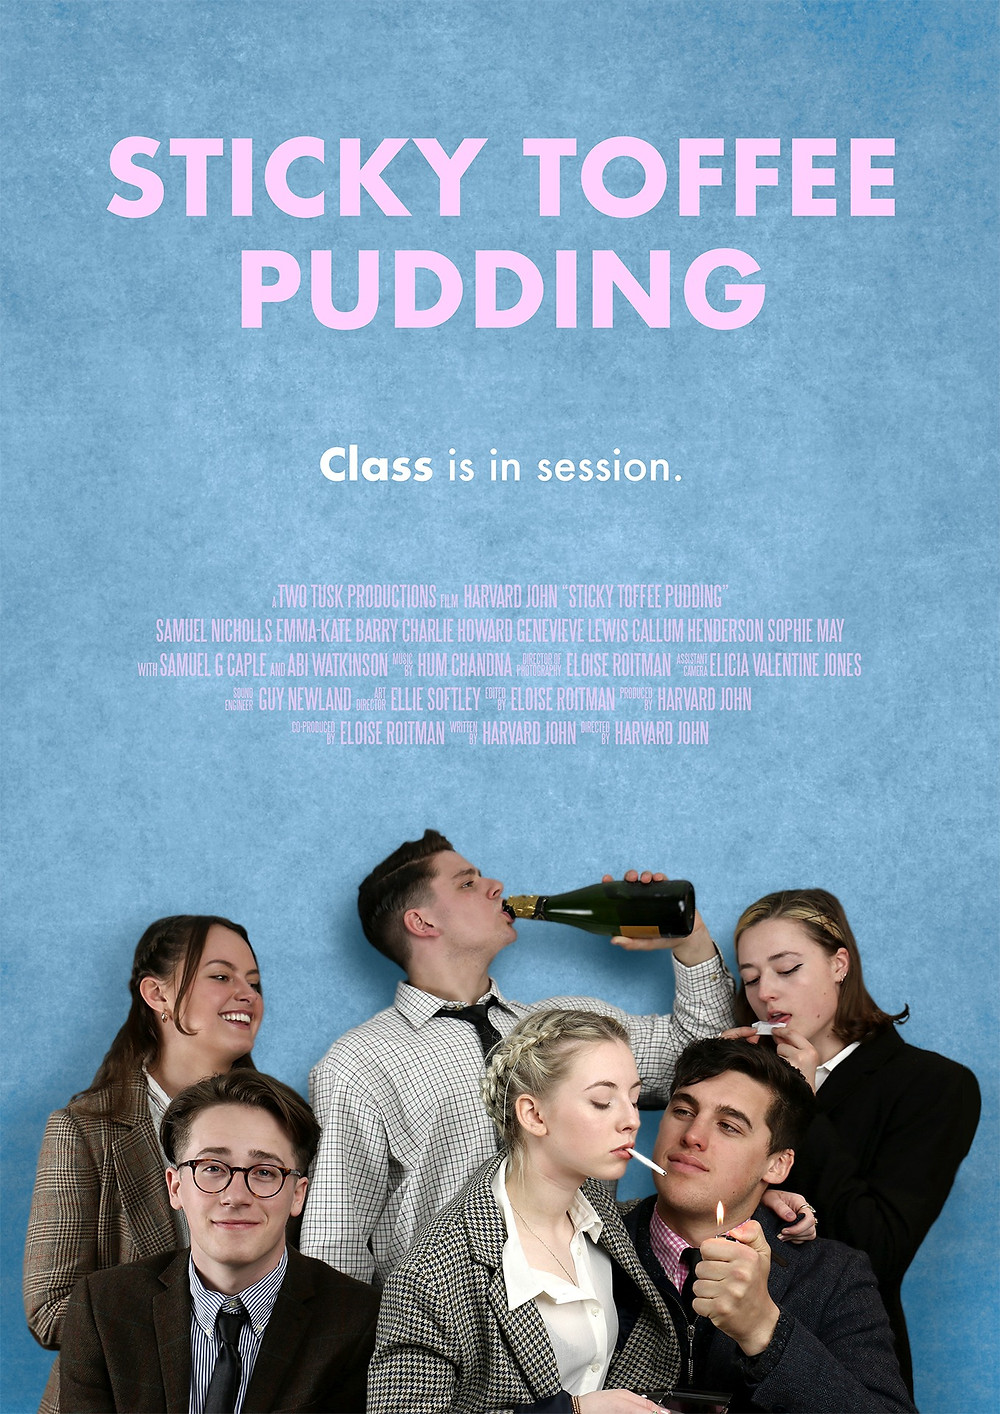 Sticky Toffee Pudding film poster showing the main cast huddled around drinking and smoking